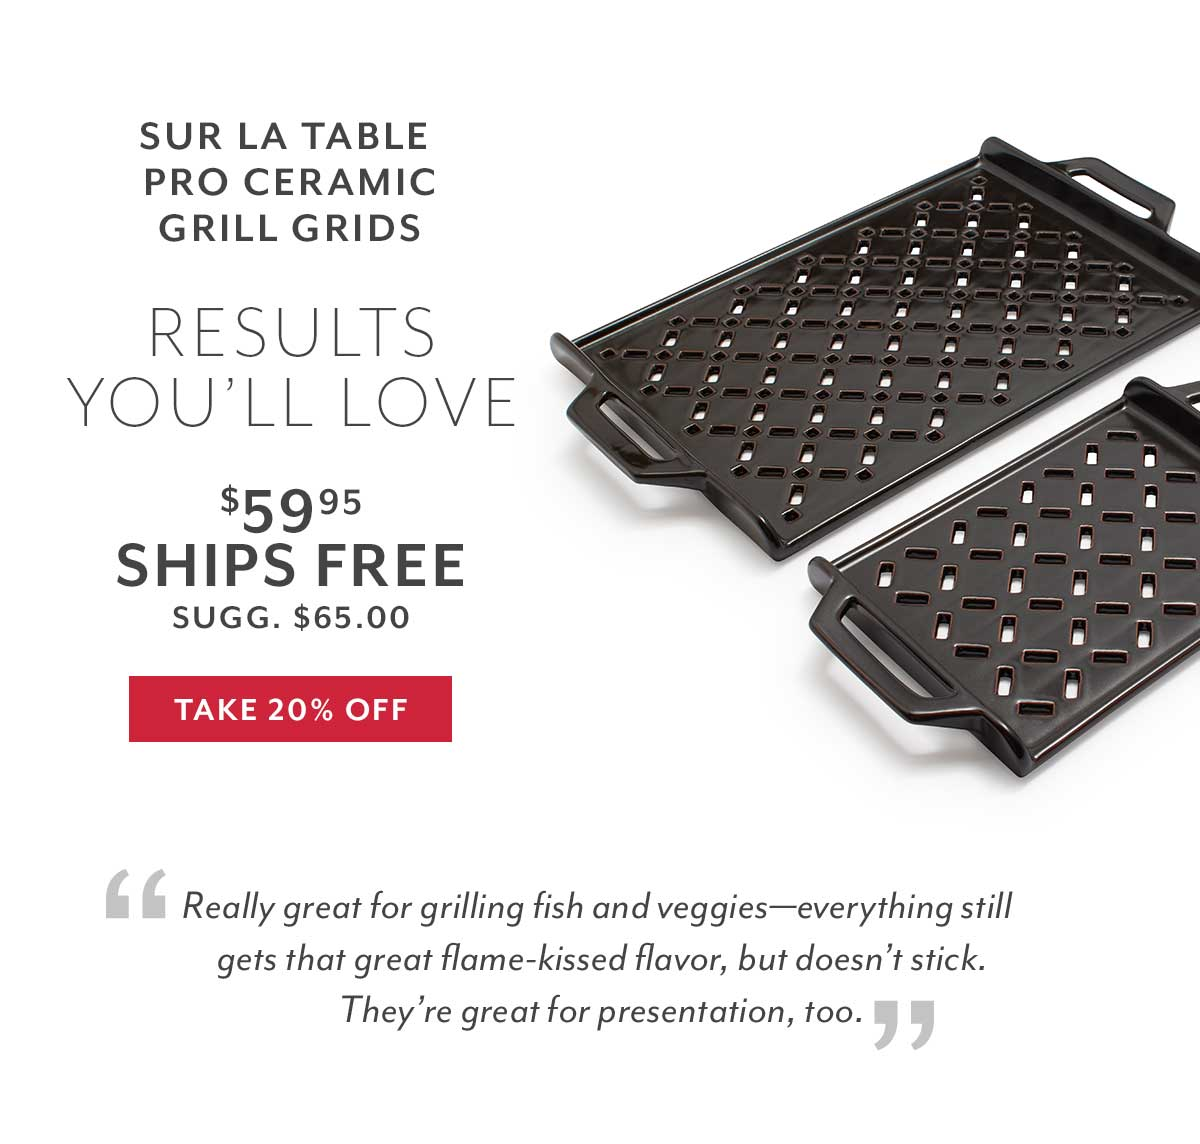 Sur La Table Grill Grids